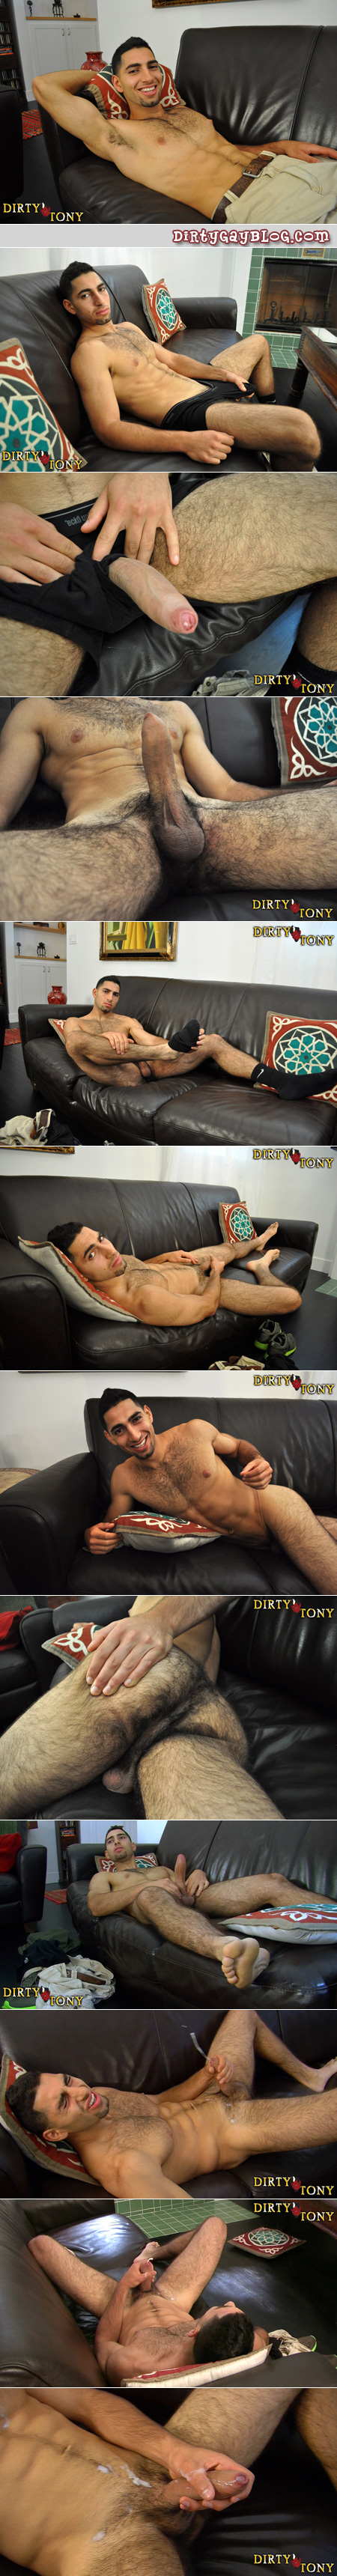 Young Arab guy jacks a big load of white cum all over his ripped hairy abs.